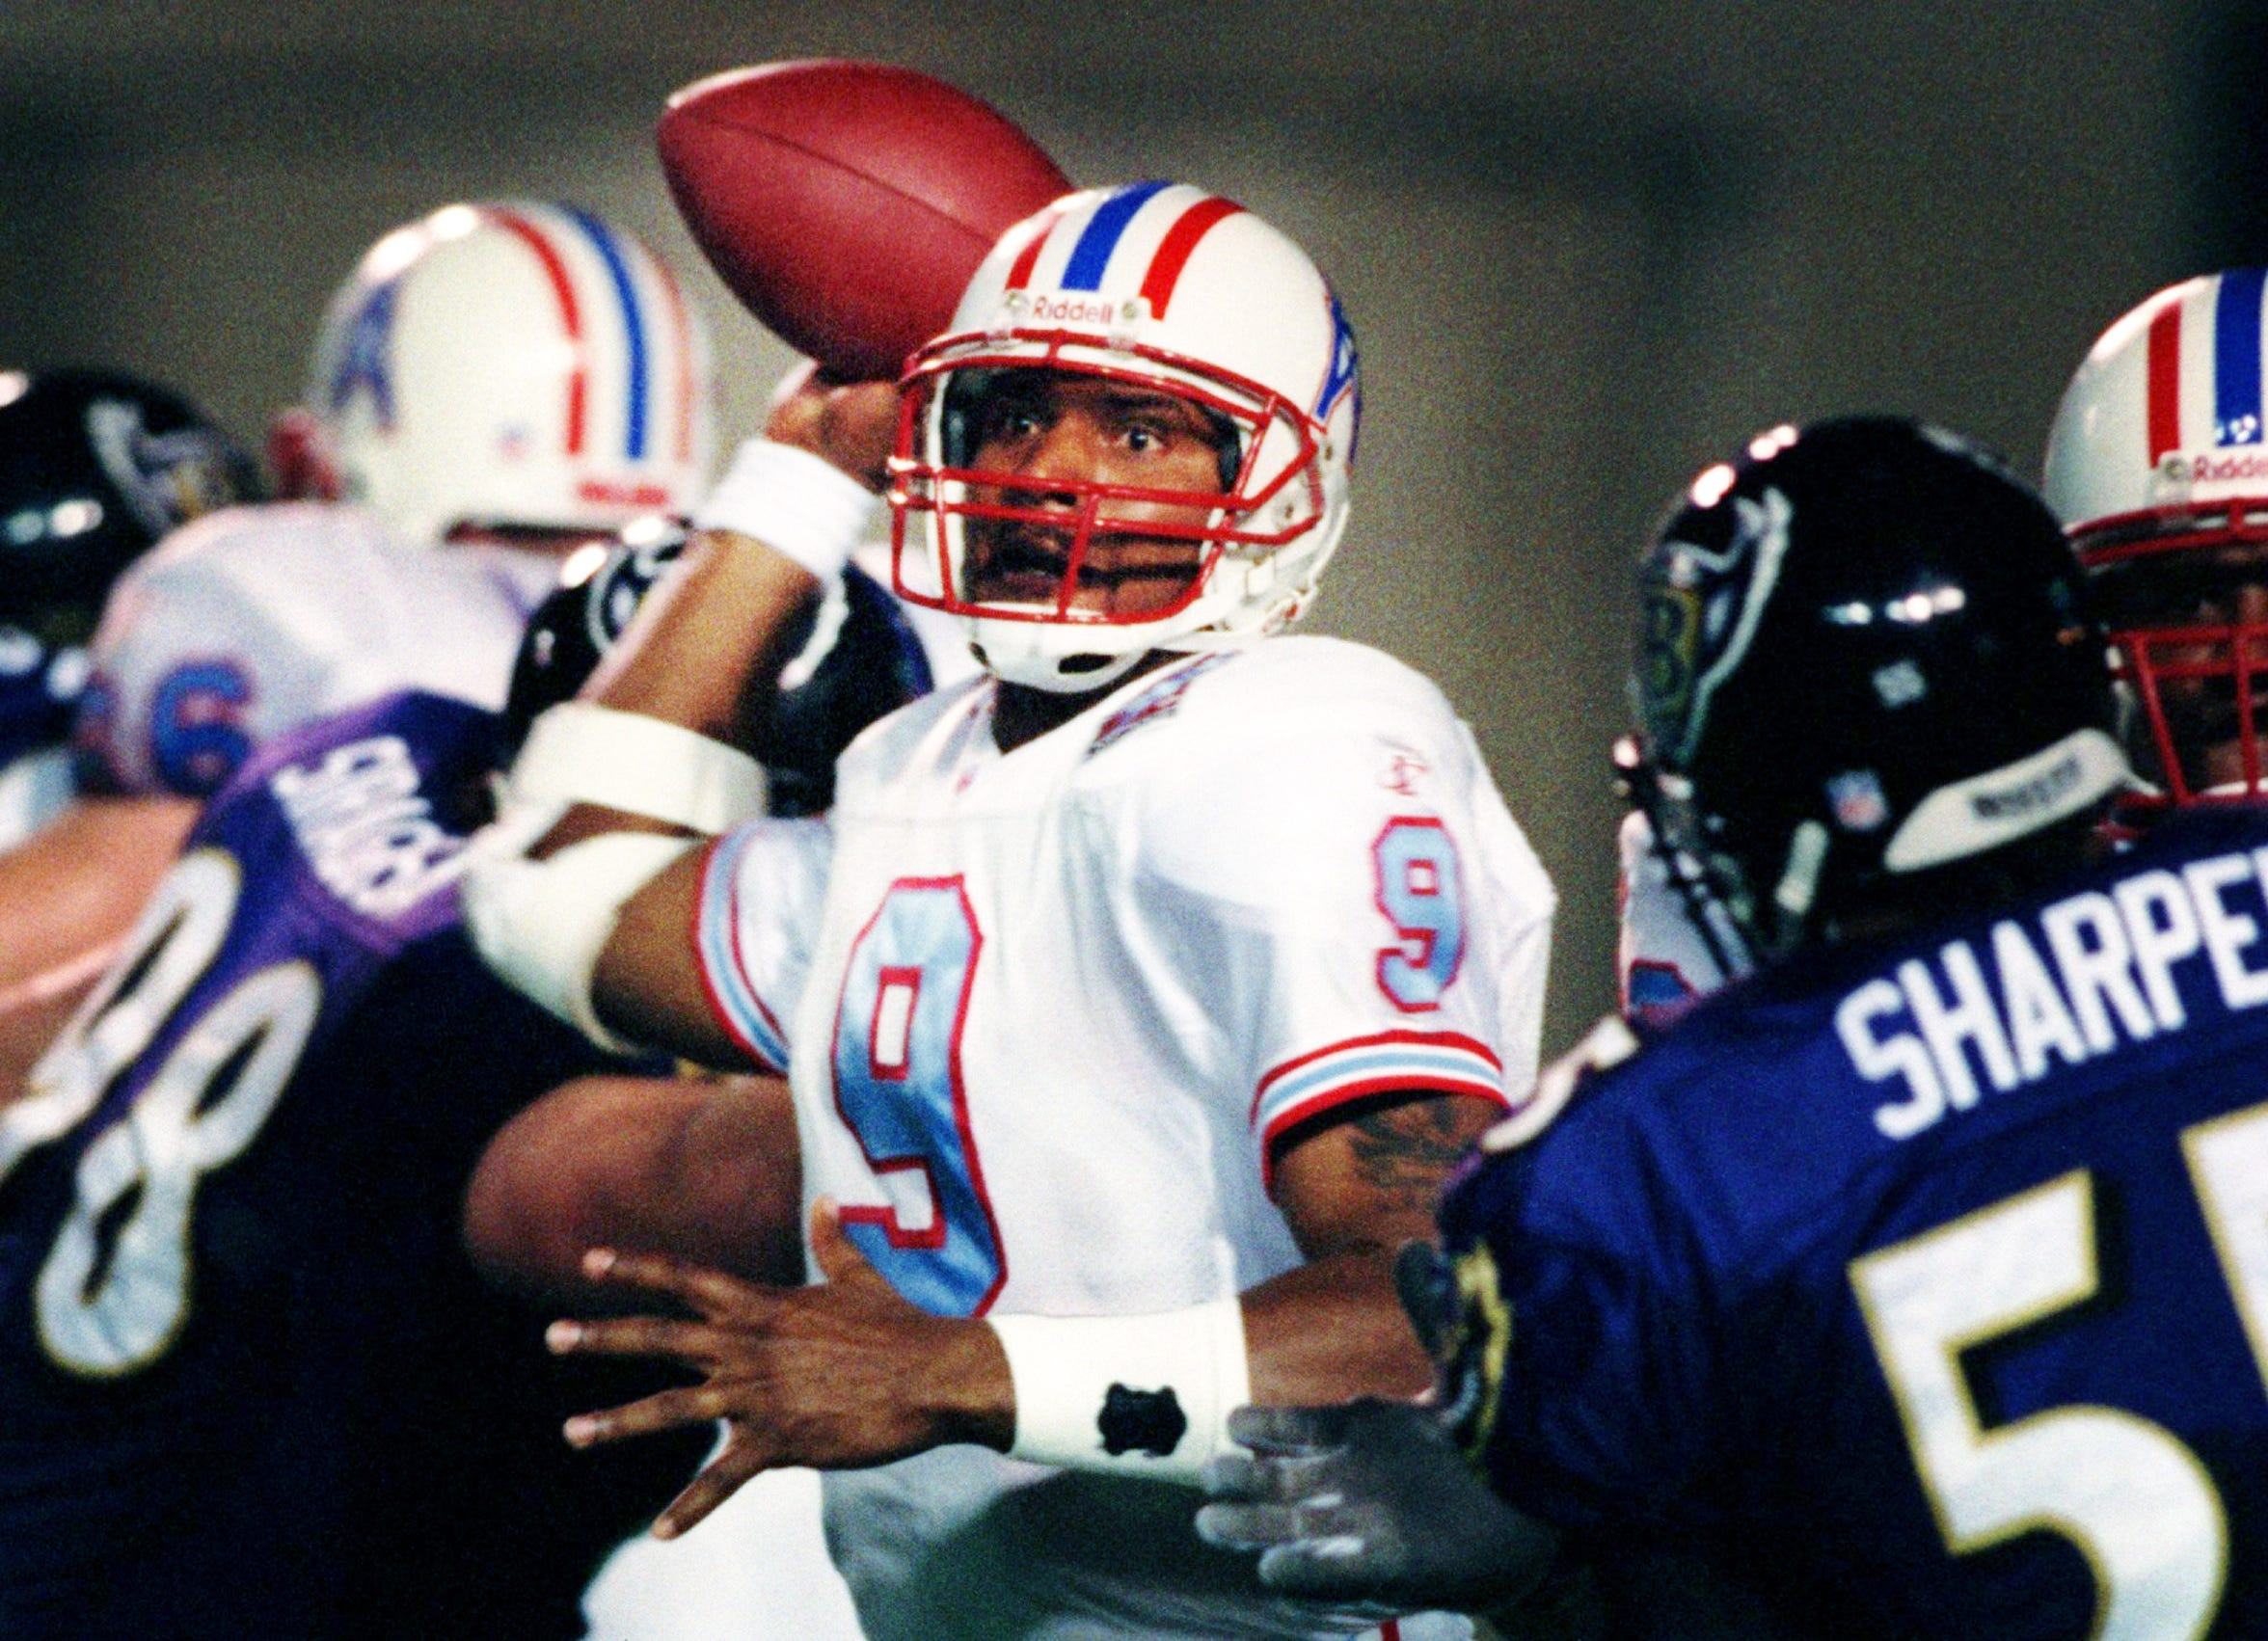 Tennessee Oilers quarterback Steve McNair (9) steps up in the pocket to throw against the defensive pressure of the Baltimore Ravens. The Oilers won the game 16-14 at Vanderbilt Stadium Dec. 6, 1998.